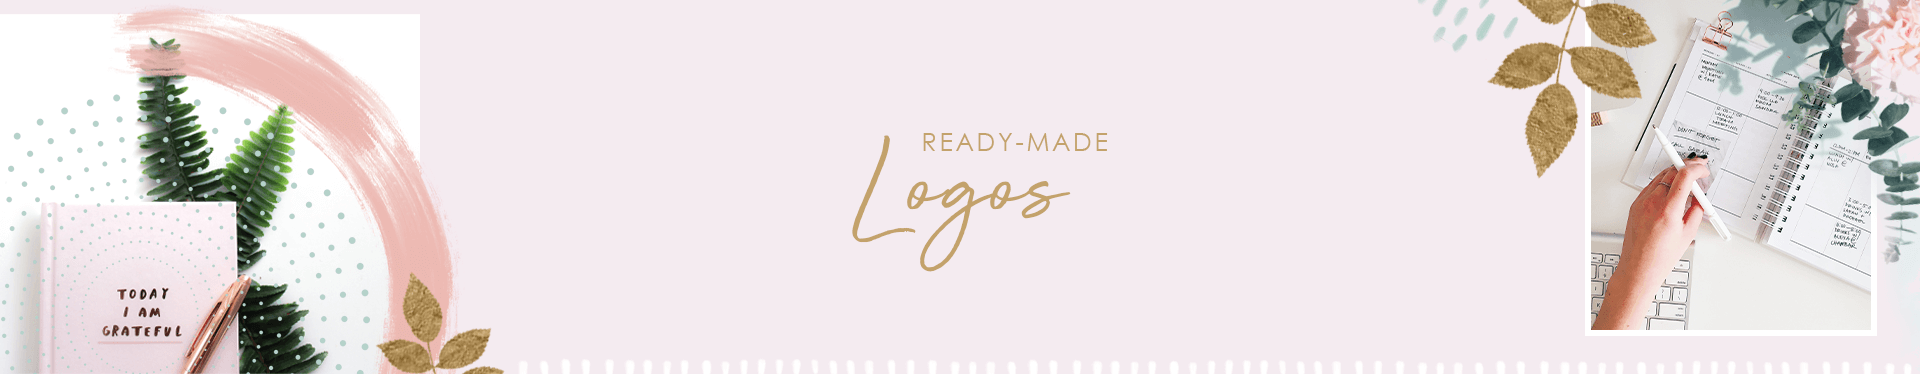 coral antler premade brands and ready-made logo shop banner